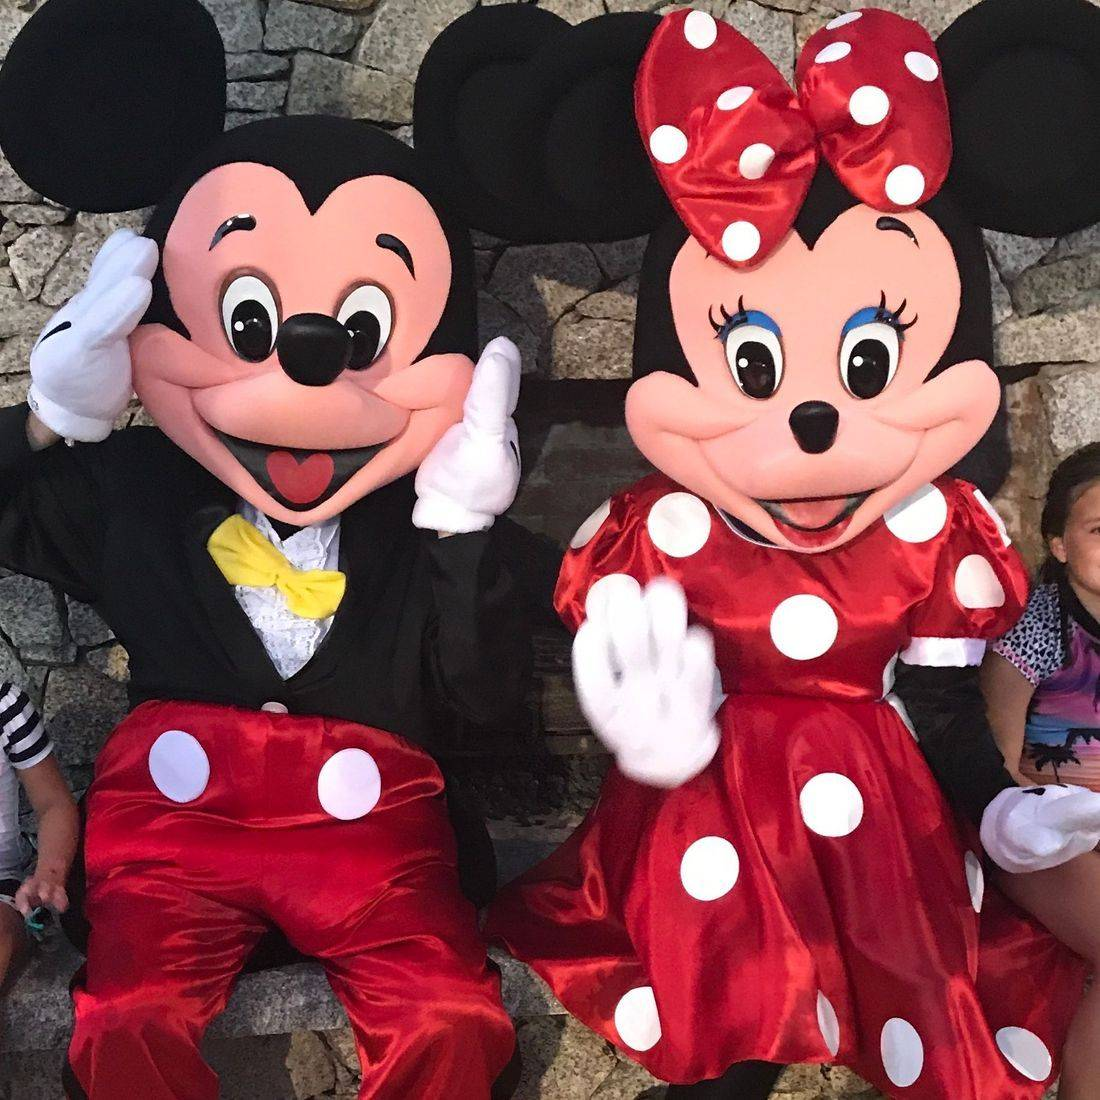 mickey mouse,minnie mouse,mickey and minnie, mickey and minnie party,mickey mouse party,minnie mouse party, party,riverside,character,princess party, kid's party entertainment